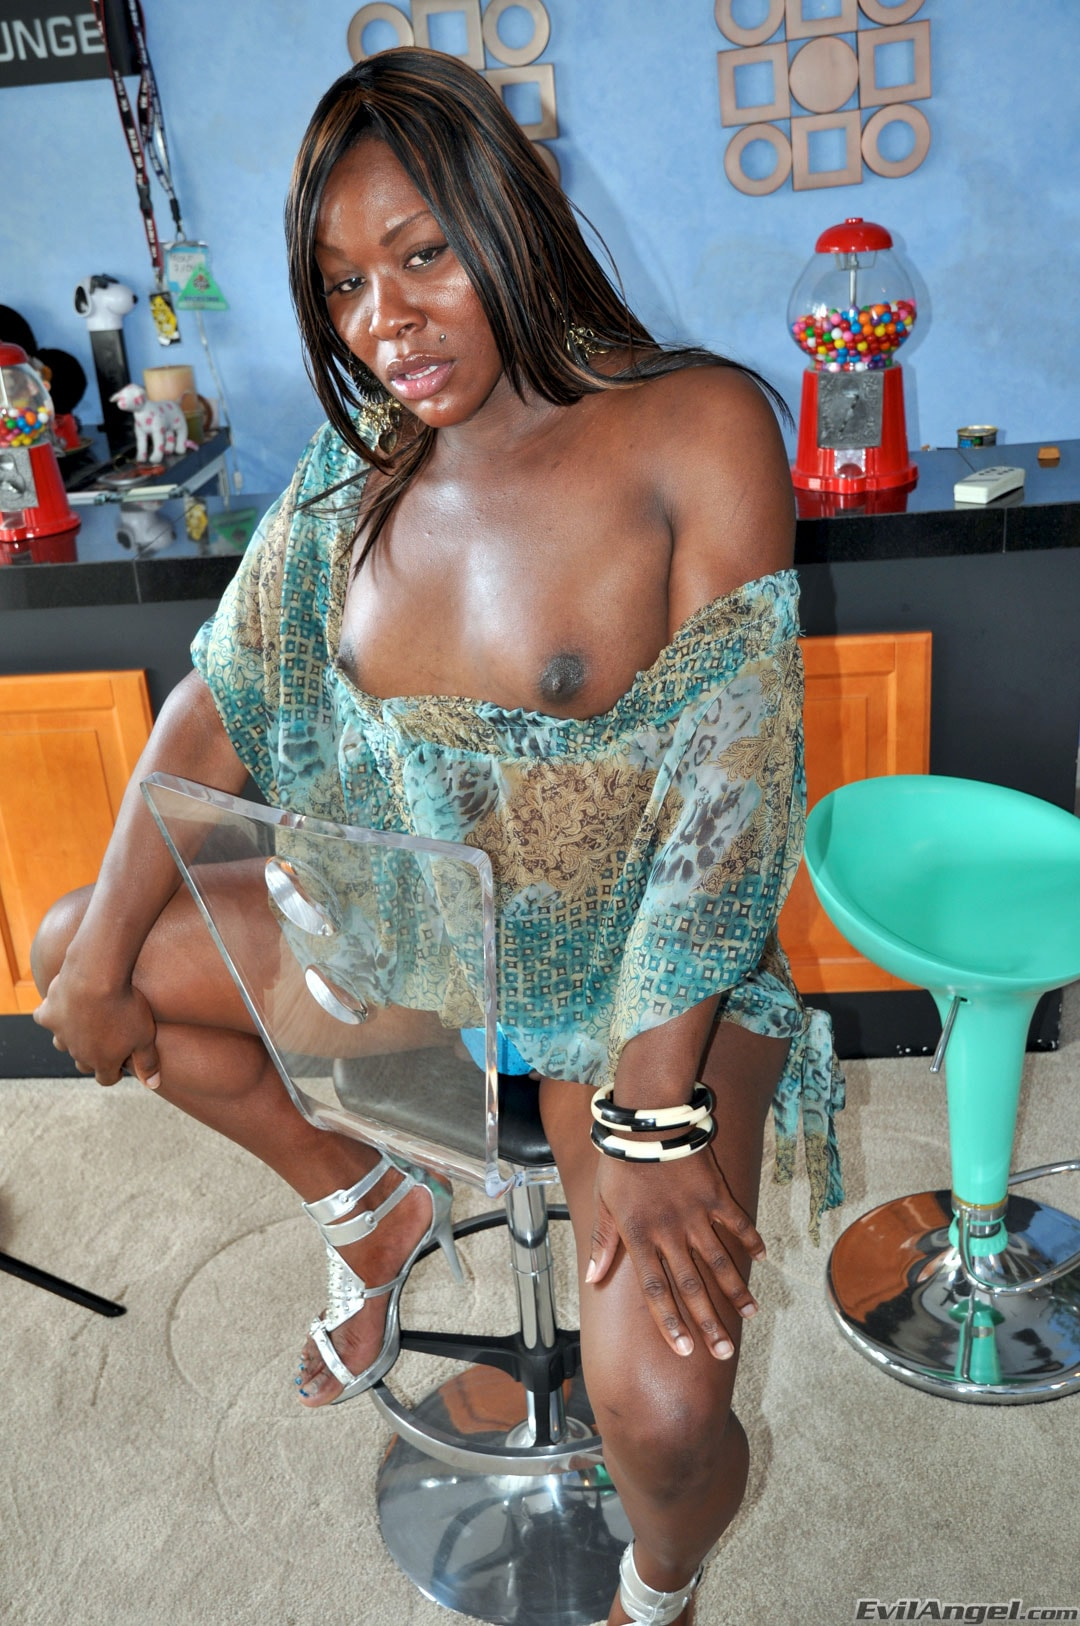 I Love Black Shemales 'Black Shemale Idol - The Auditions' starring Sex Kitten (Photo 6)